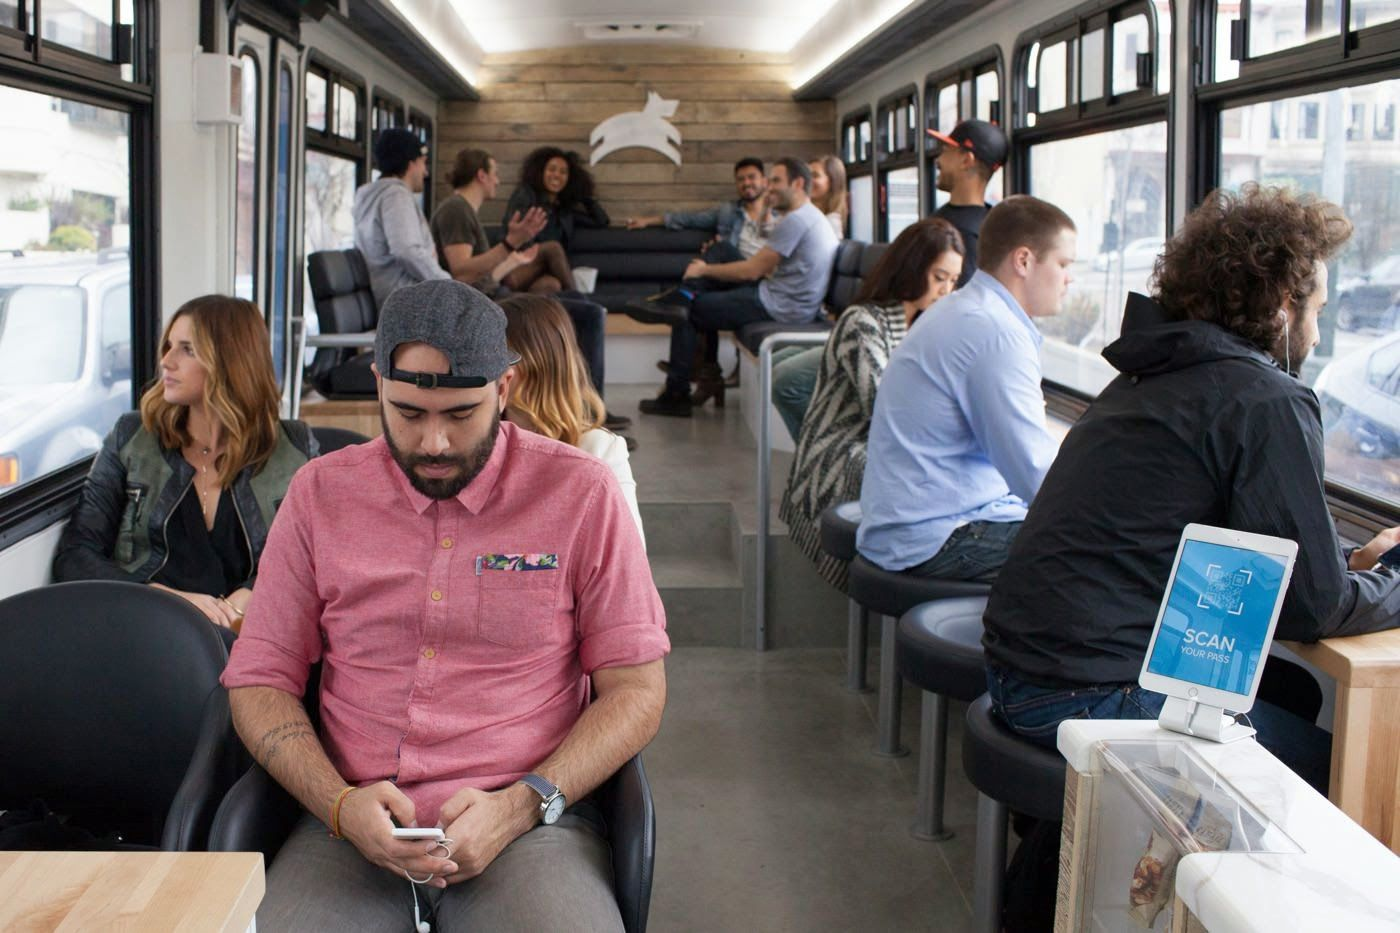 The Pop Up Hype Pops Up in San Francisco's Public Transport